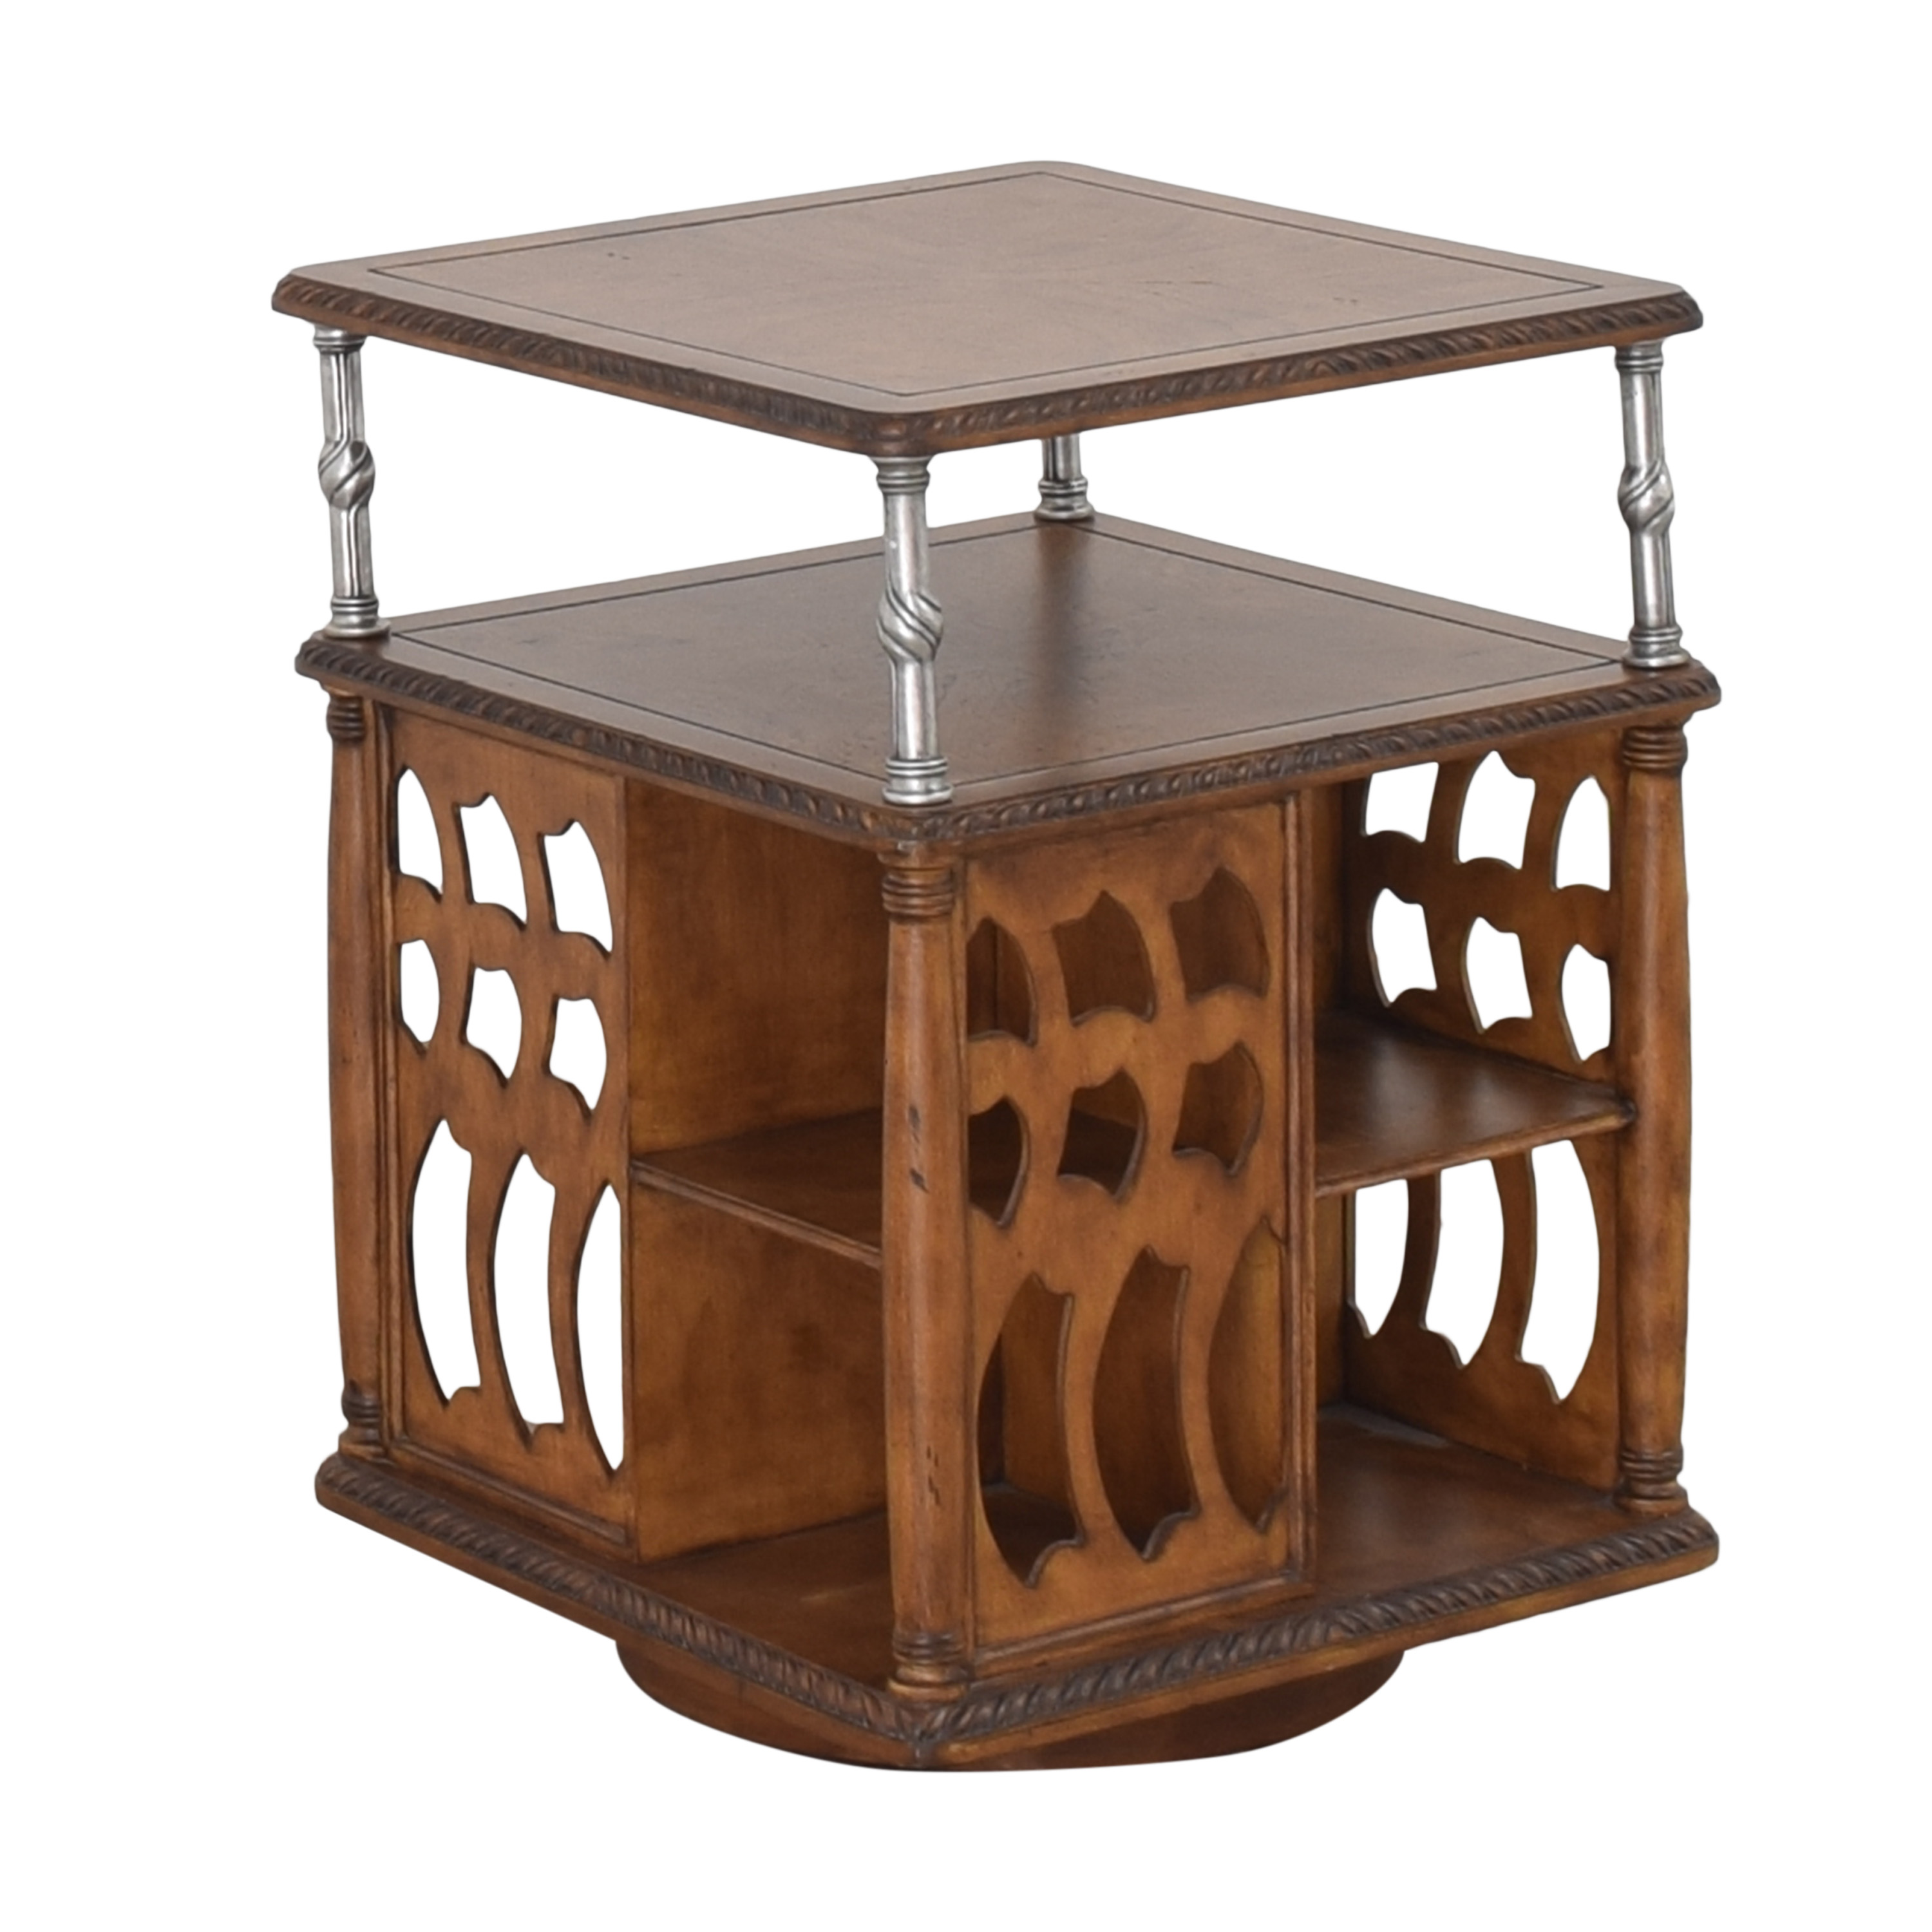 Vintage Style Swivel Accent Table dimensions